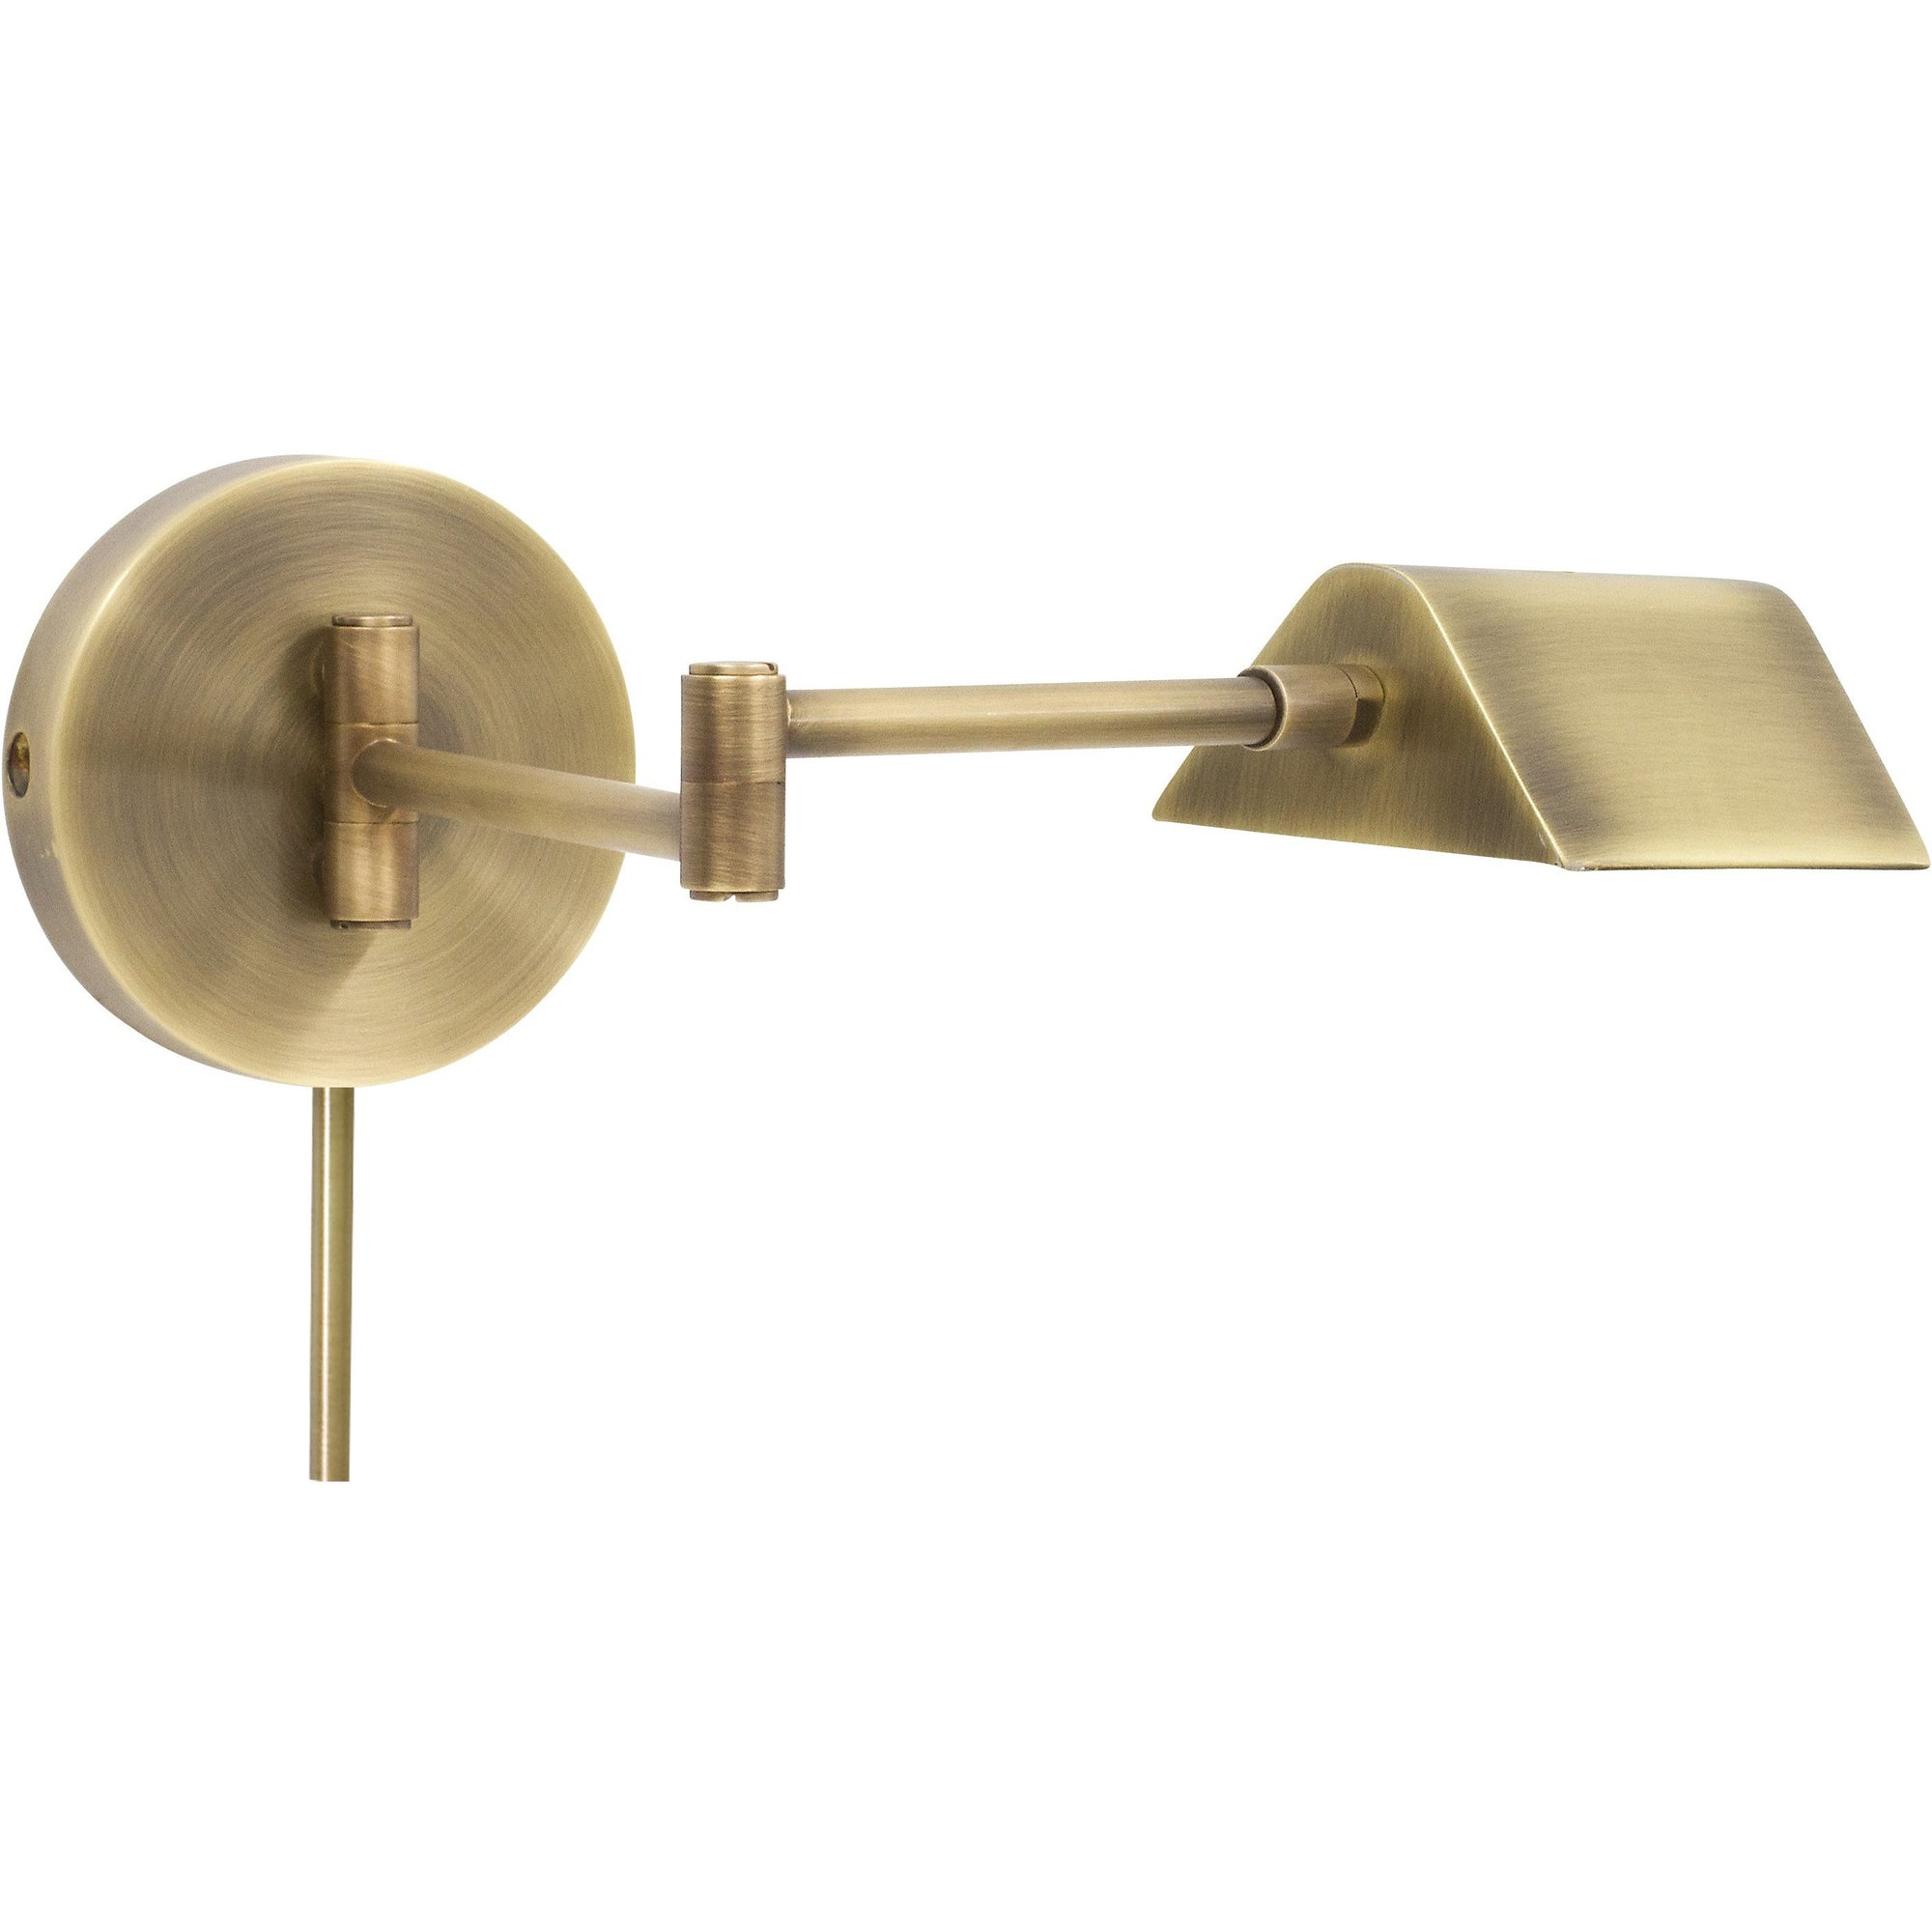 House Of Troy Wall Lamps Delta LED Task Wall Lamp by House Of Troy D175-AB